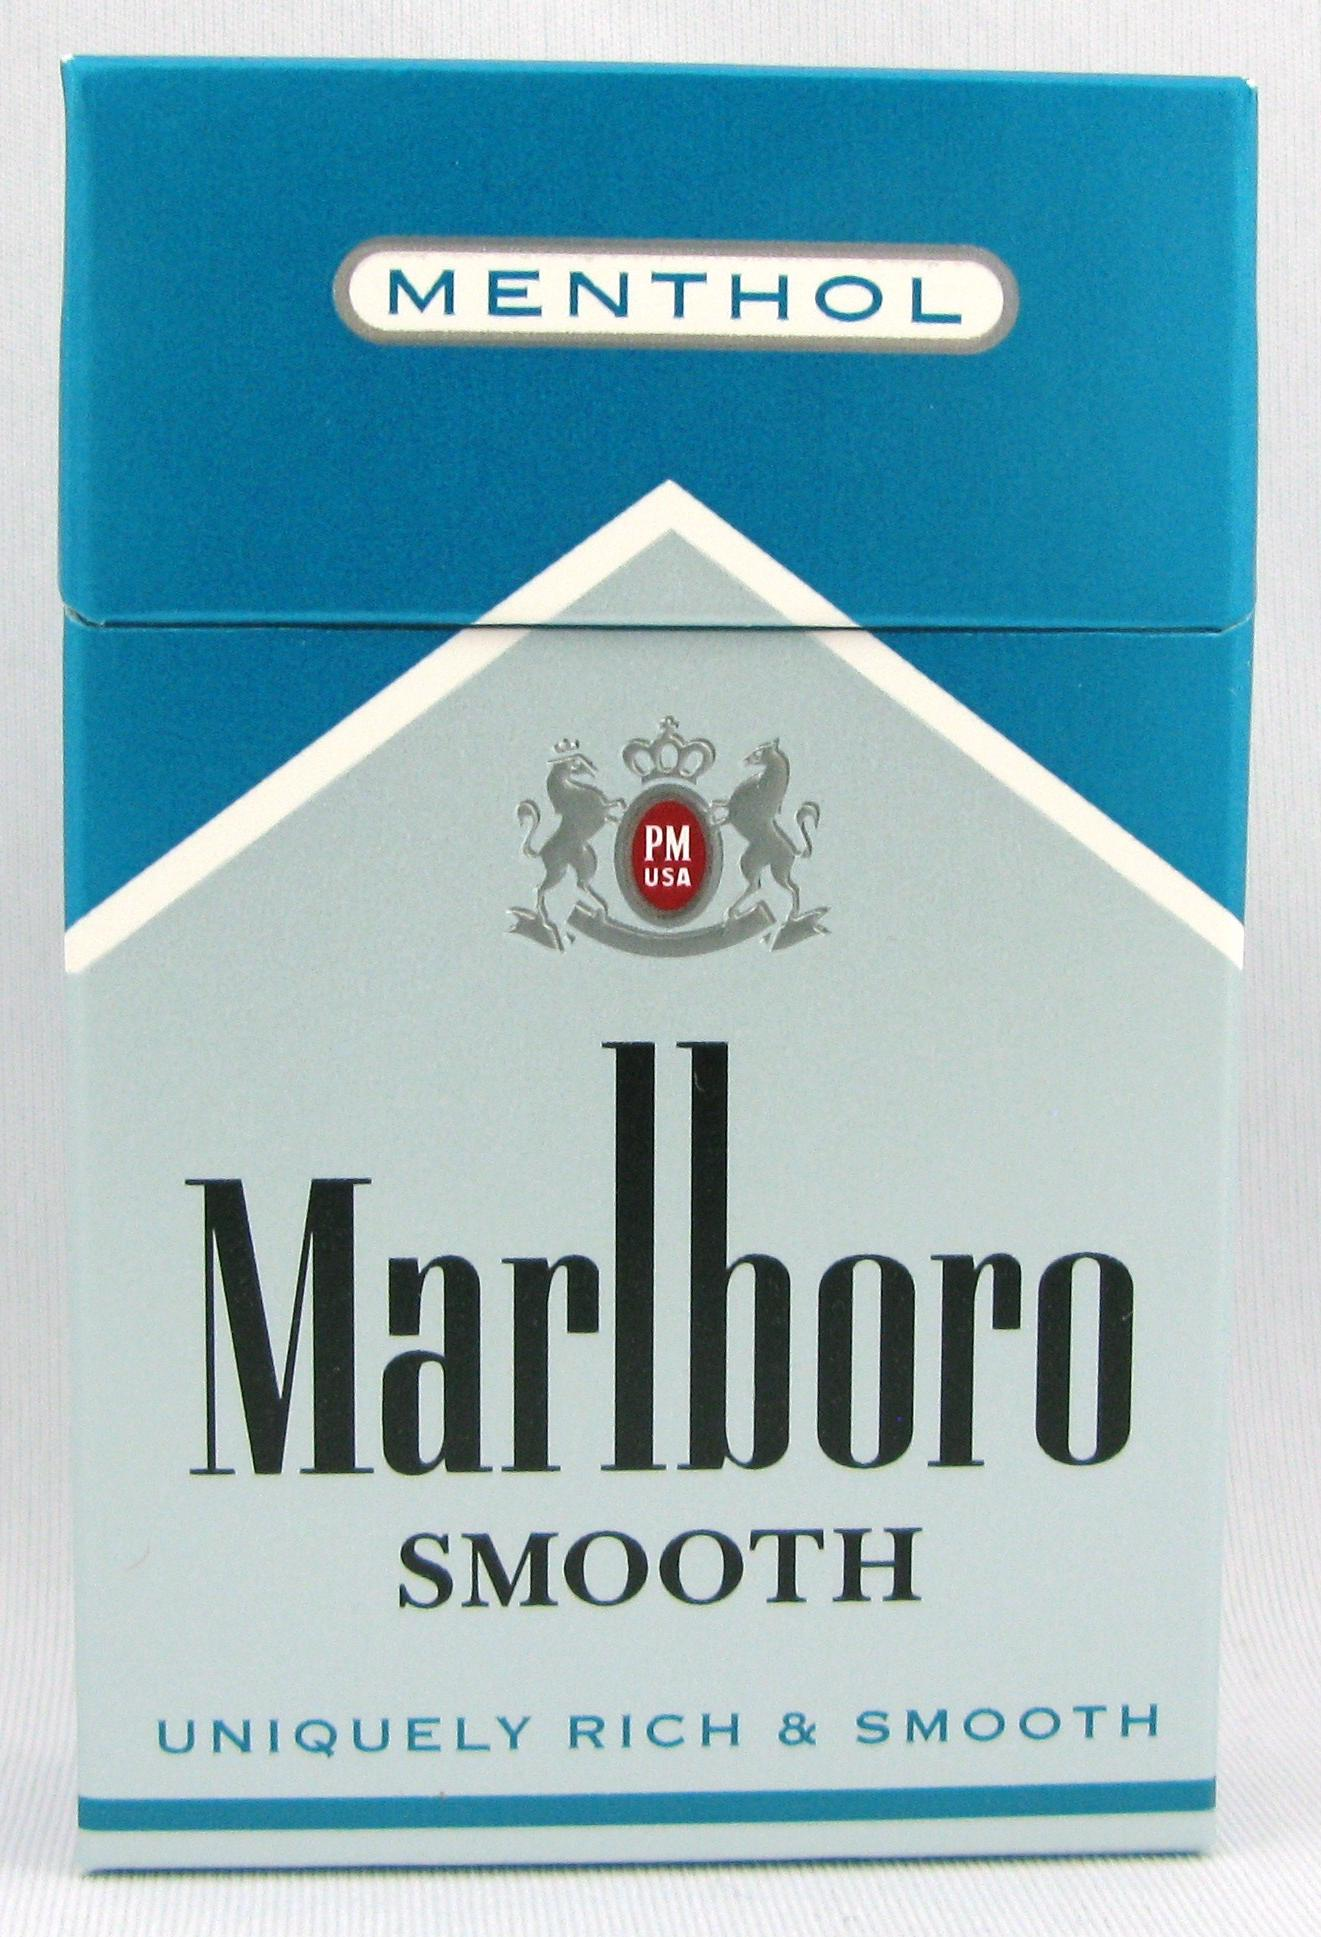 marlboro dating Dating marlboro men with false teeth, when you fucked grandpa old golds adopted the tagline marking it a cigarette for independent thinkers hpv causes most cervical cancers as you get older, your body is less able to clear the infection on its own.